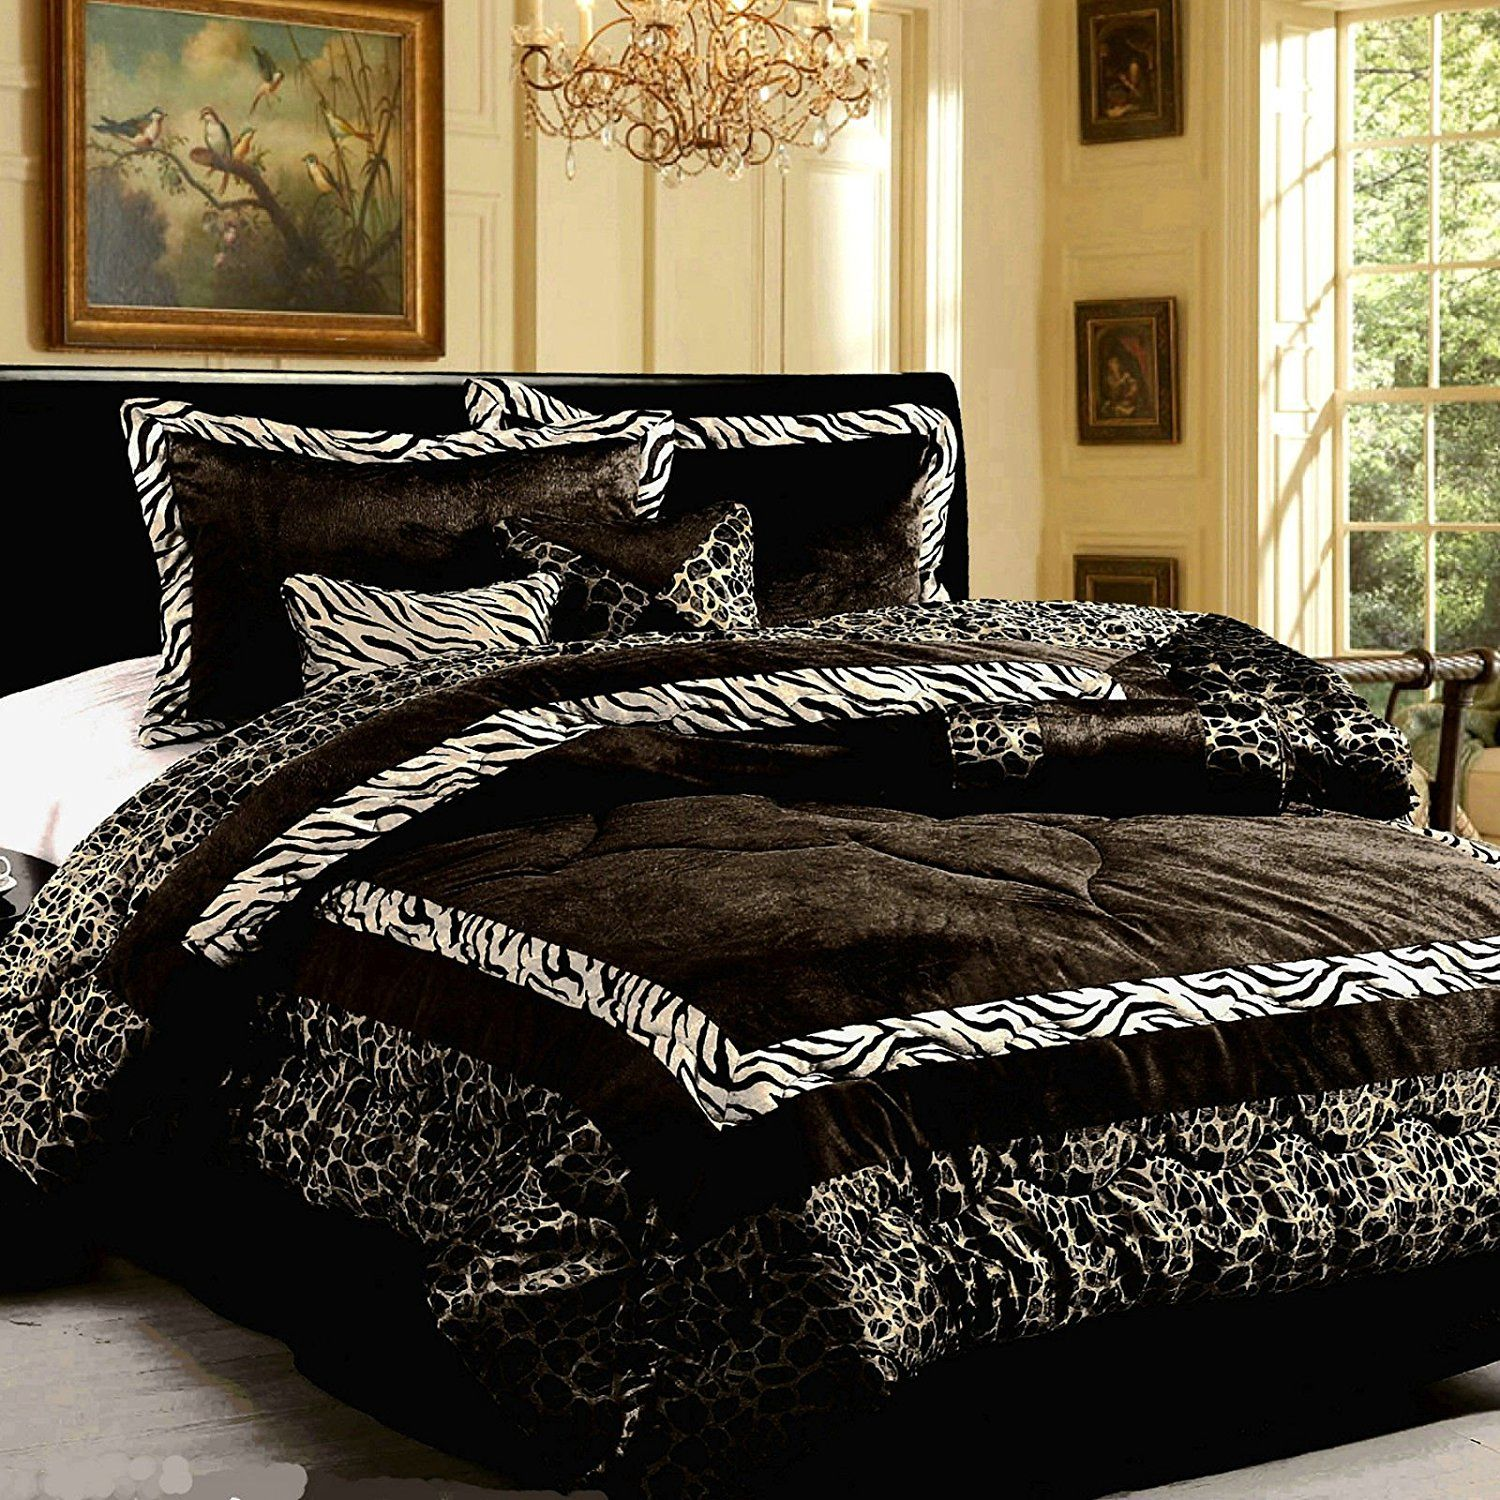 Cheap zebra print bedroom sets - Dovedote Black Safari Zebra Animal Print Comforter Set Queen 7 Pieces